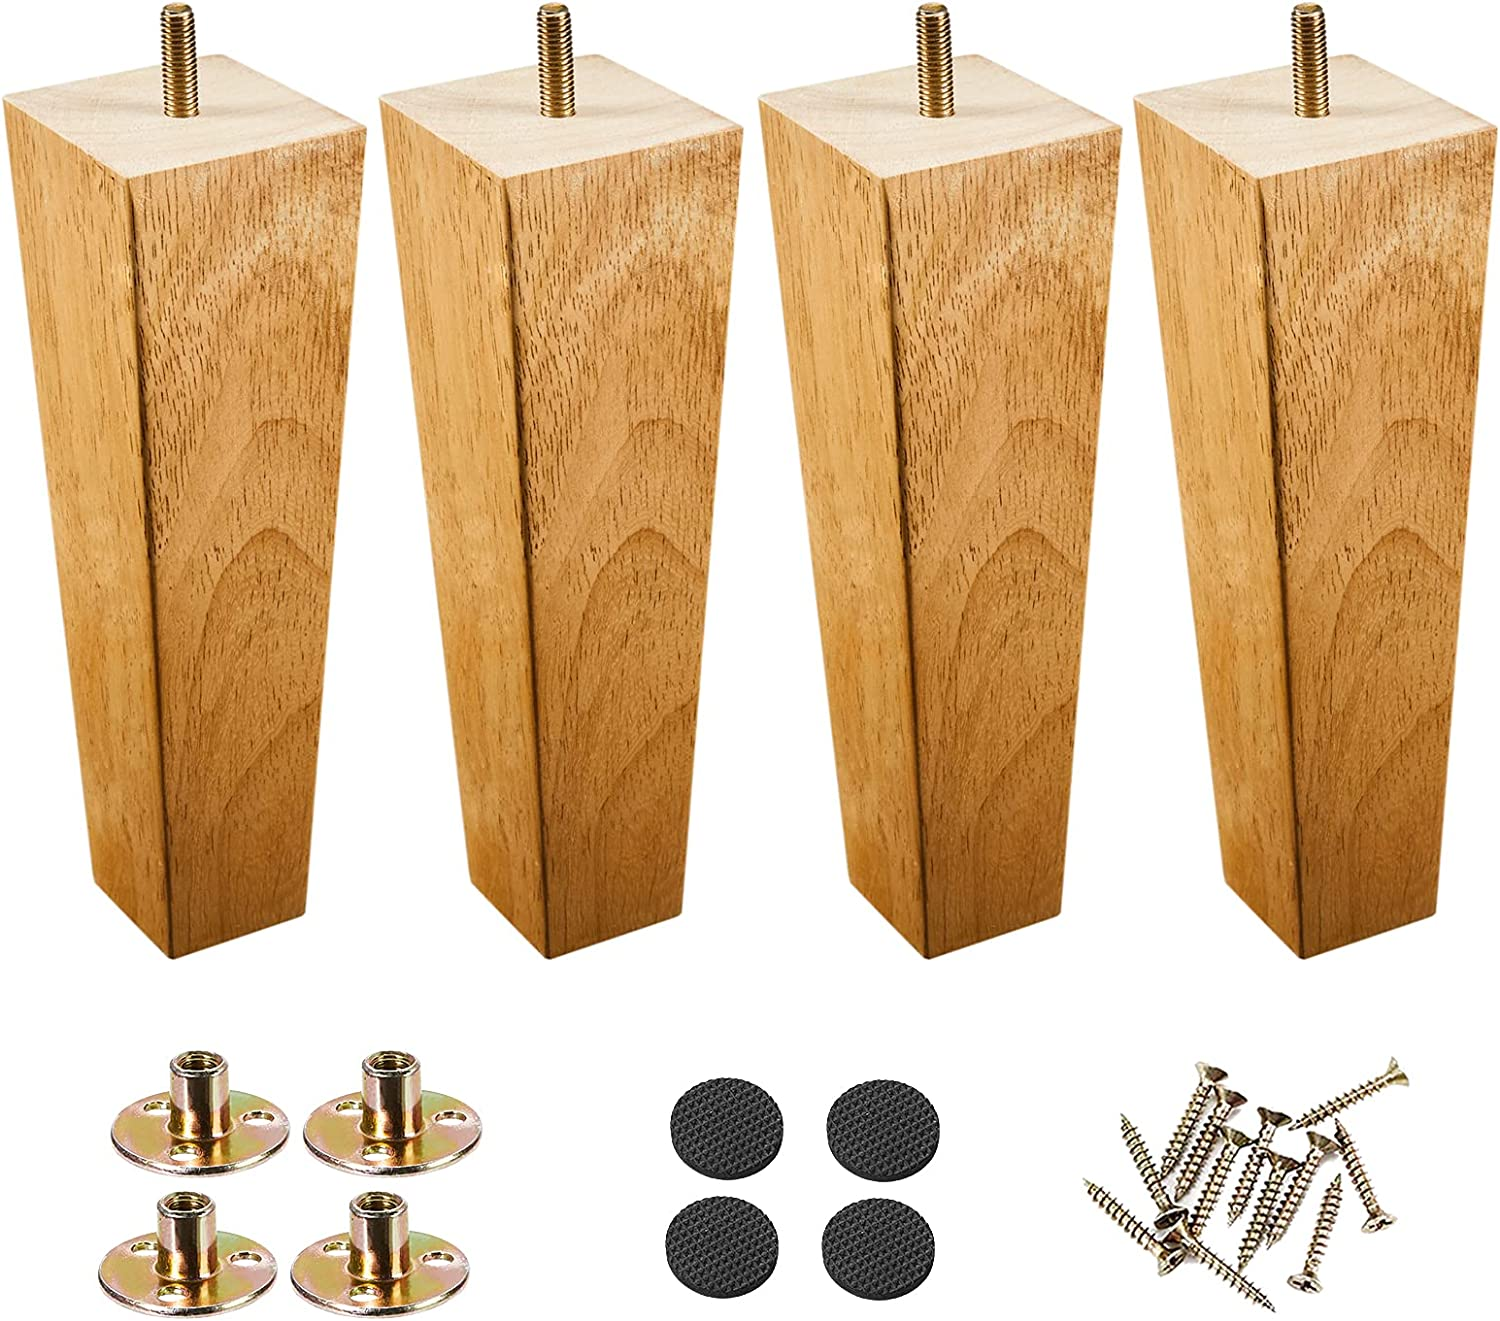 Wood Furniture Detroit Mall Legs Set quality assurance of 4 Mounting Inch Couch 8 Plates